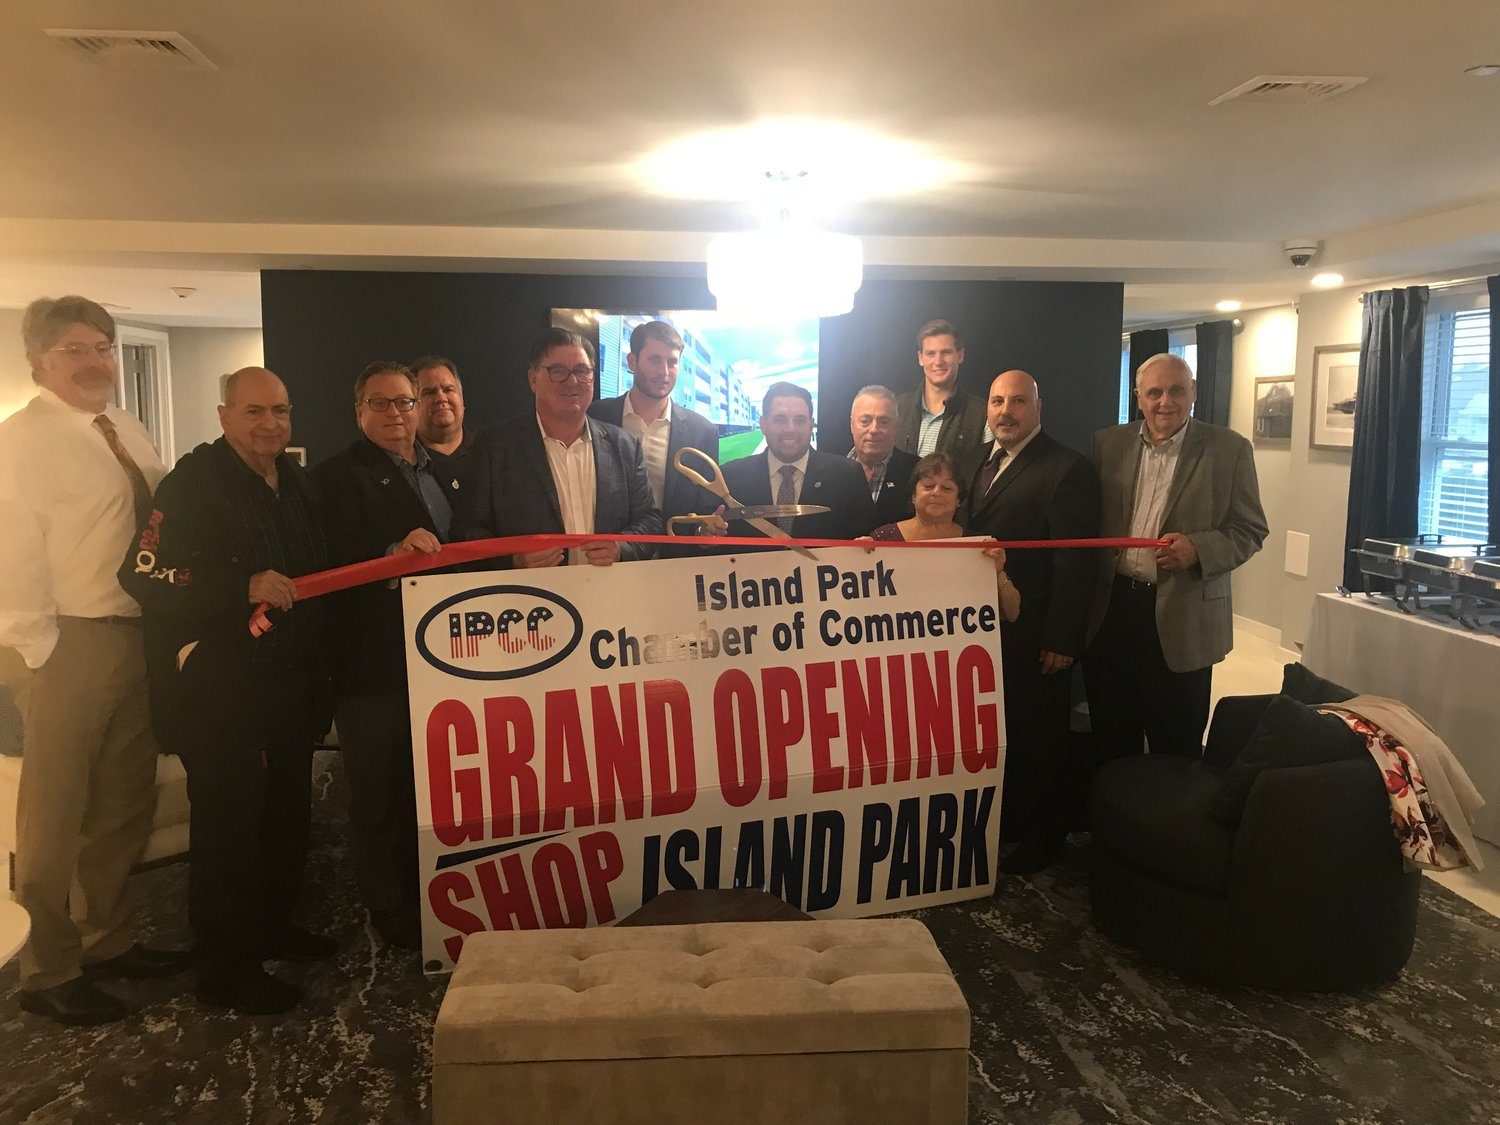 Members of the community, elected officials and Chamber of Commerce representatives attended a ribbon cutting ceremony for the grand opening of the Channel Club apartment complex in Island Park on Oct. 30.